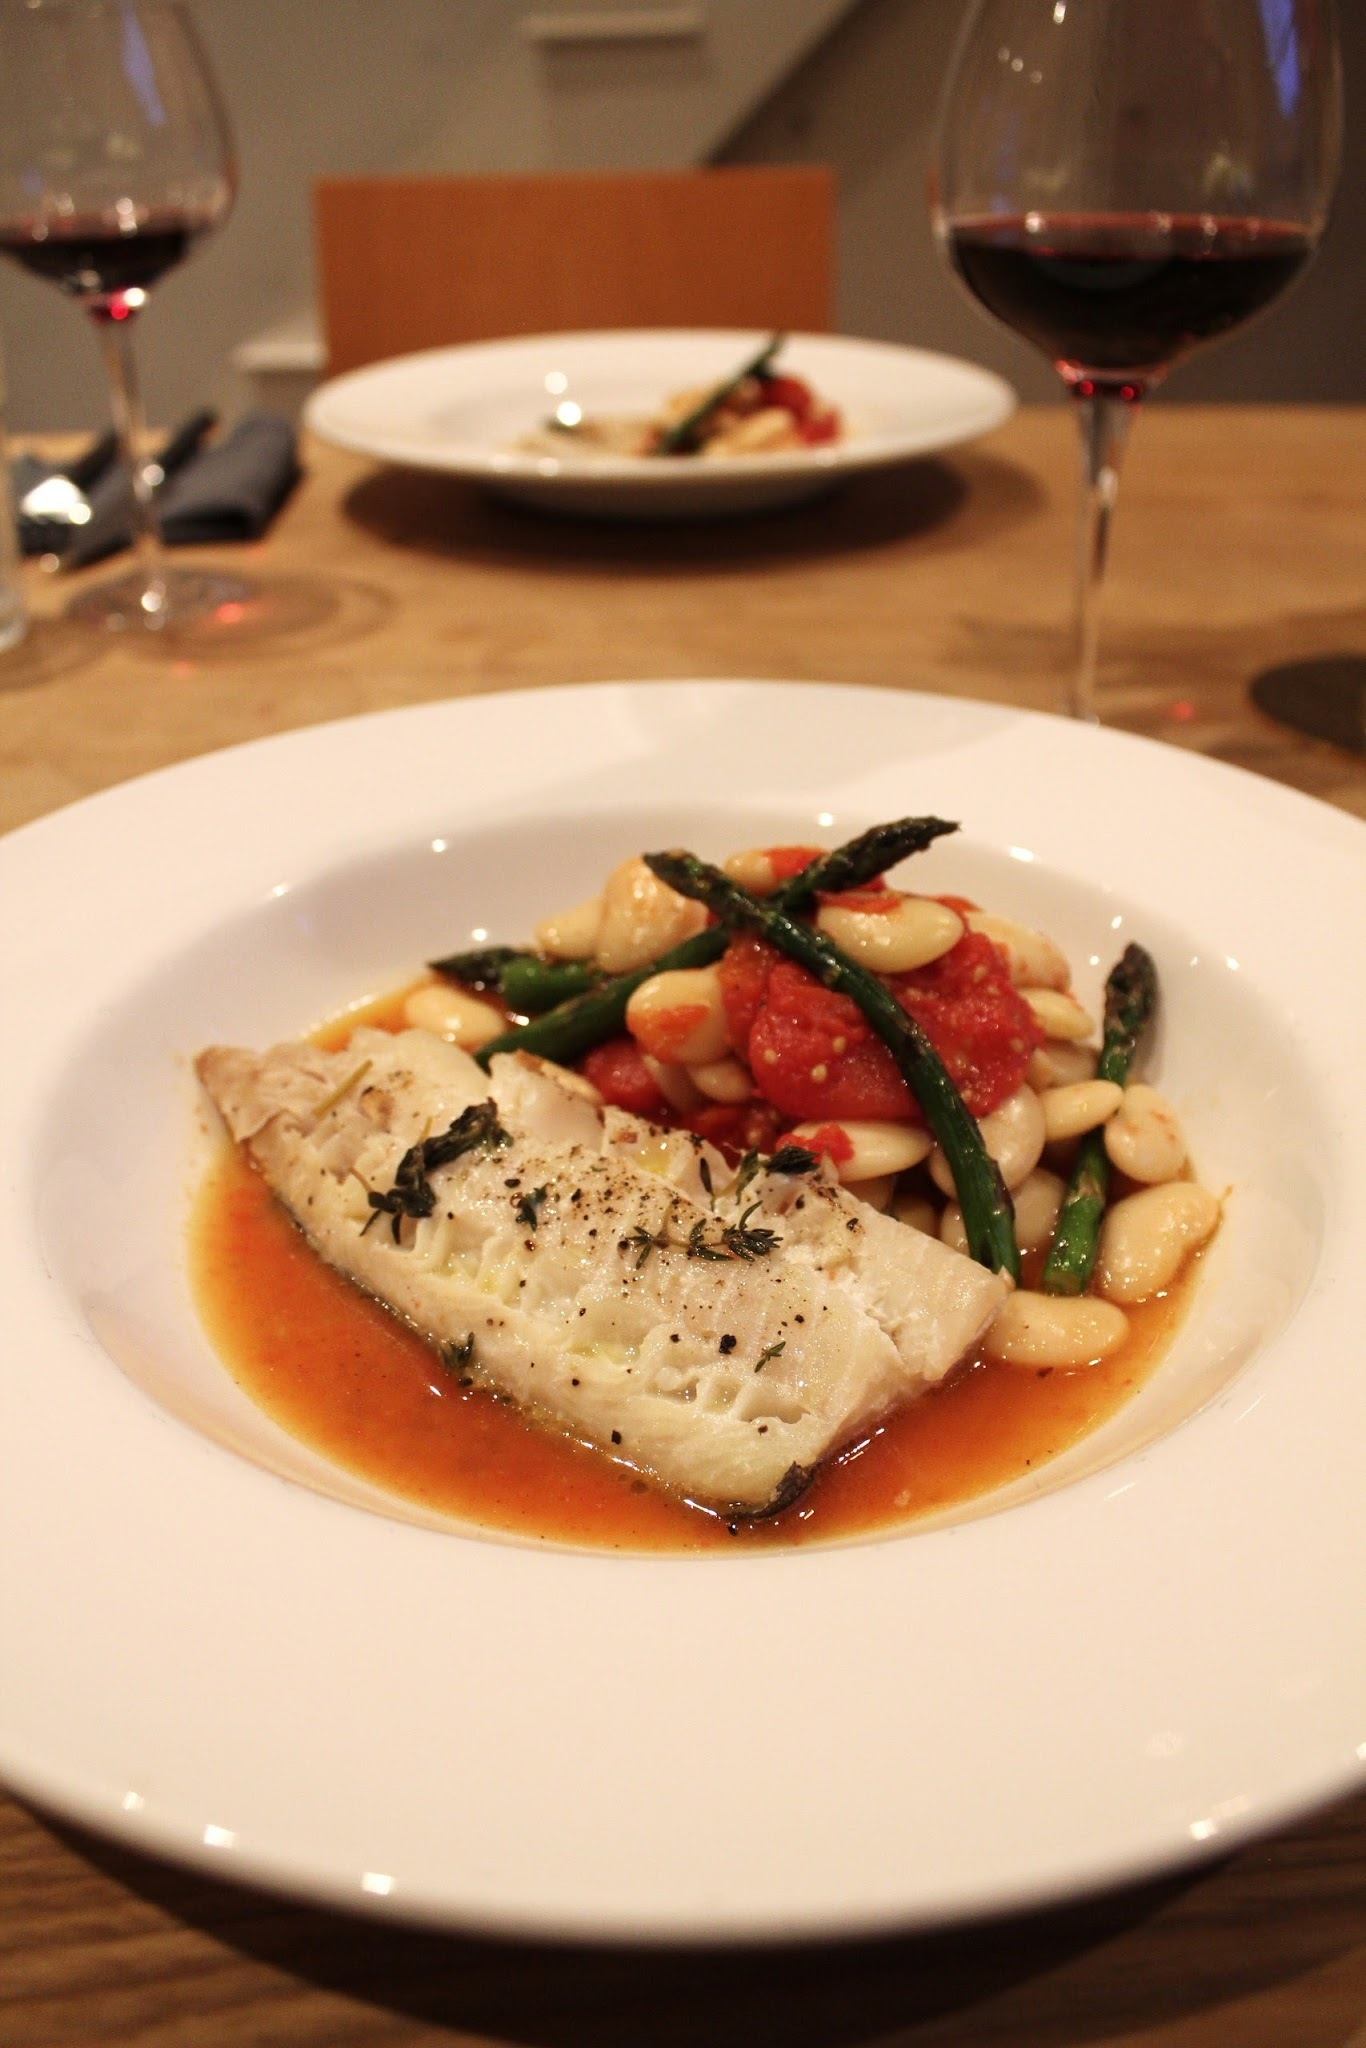 Roasted Cod with Butter Beans, Baby Plum Tomatoes and Asparagus